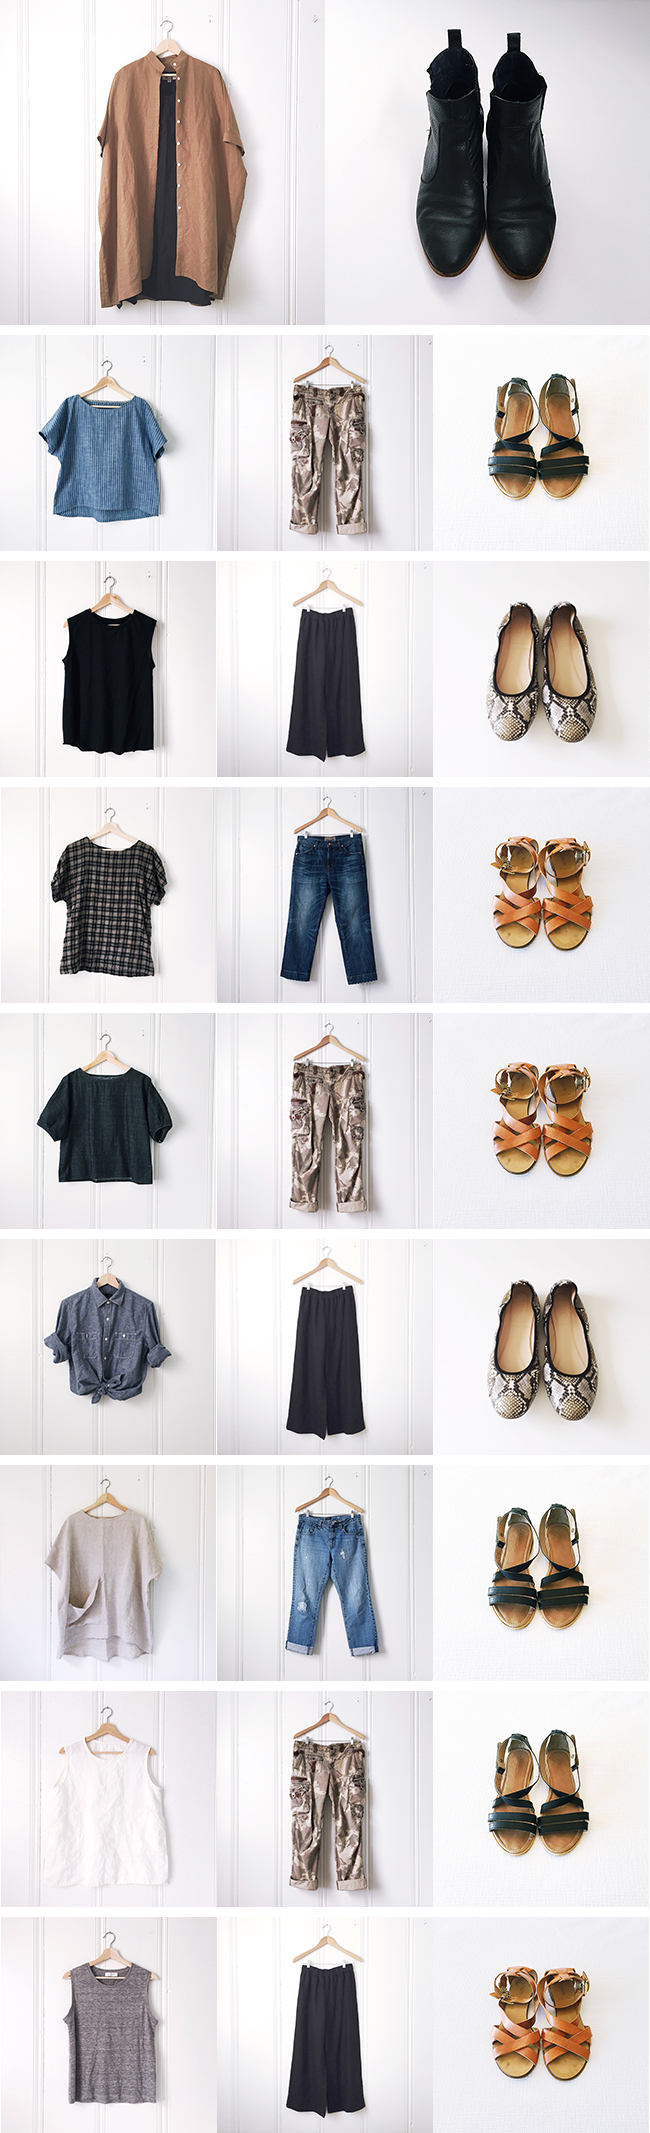 Summer wardrobe results: Better luck next year!